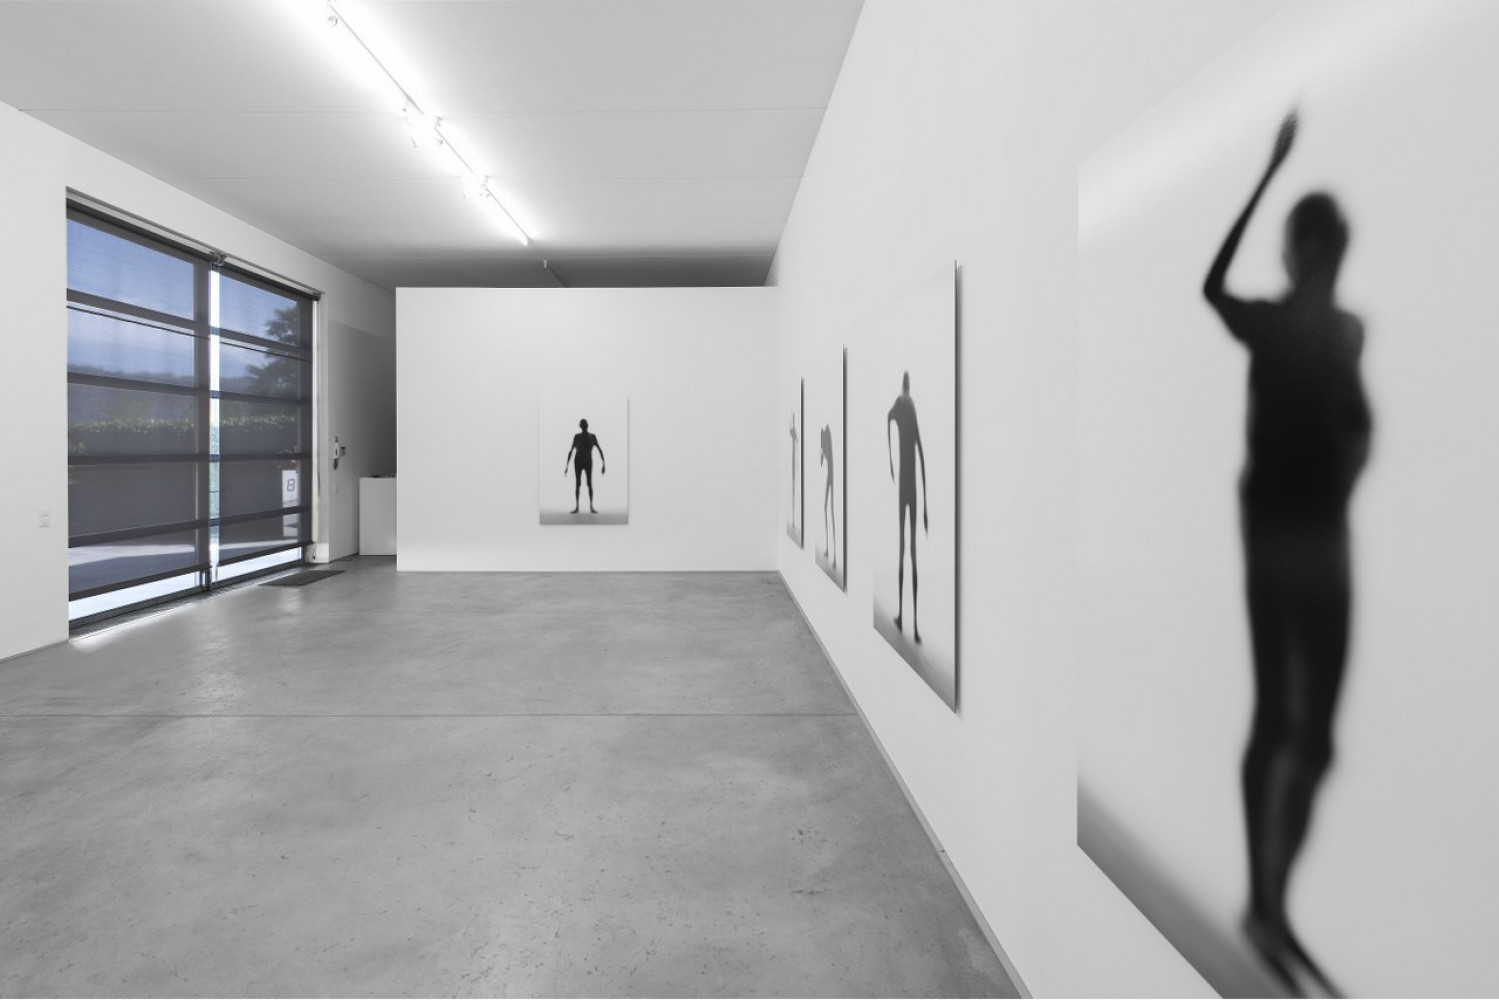 Marco D'Anna, 'Oltre', Installation view, Buchmann Galerie Agra / Lugano